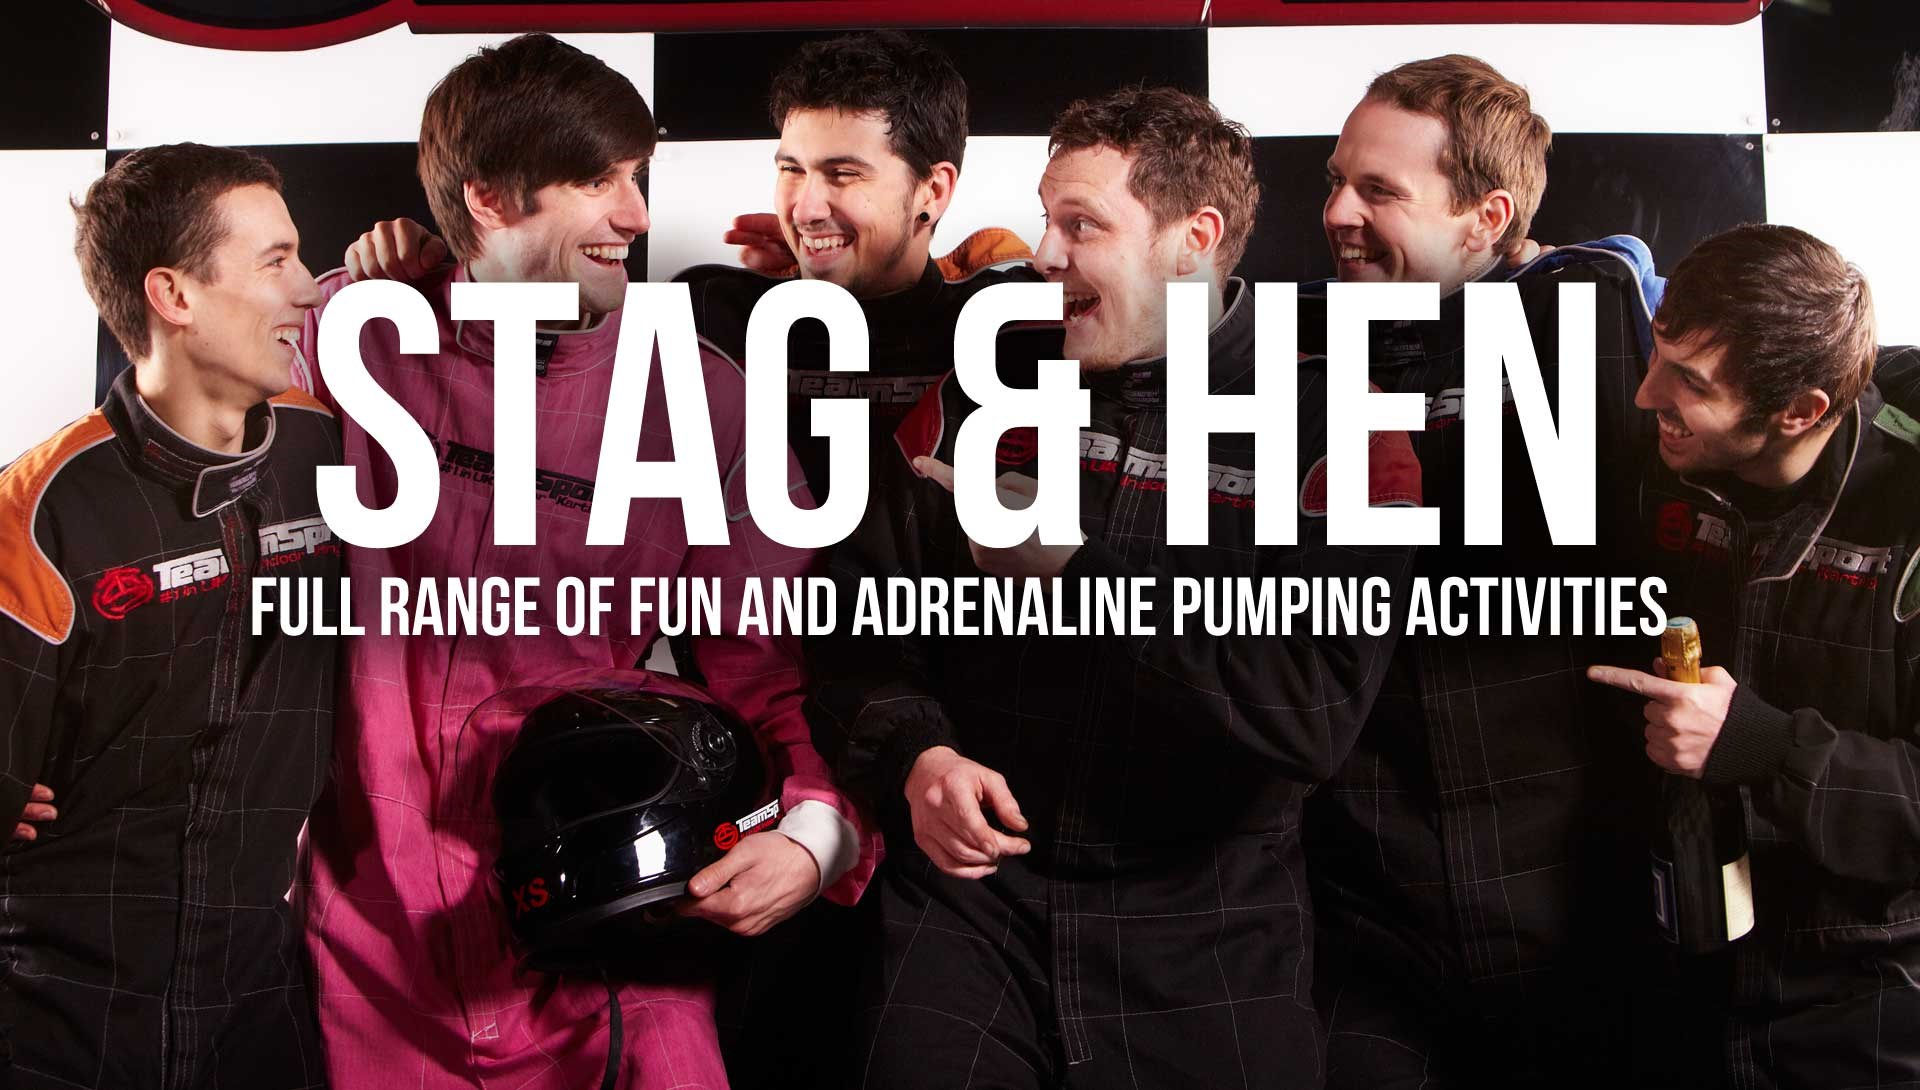 Go Kart Racing Events - Stag & Hen